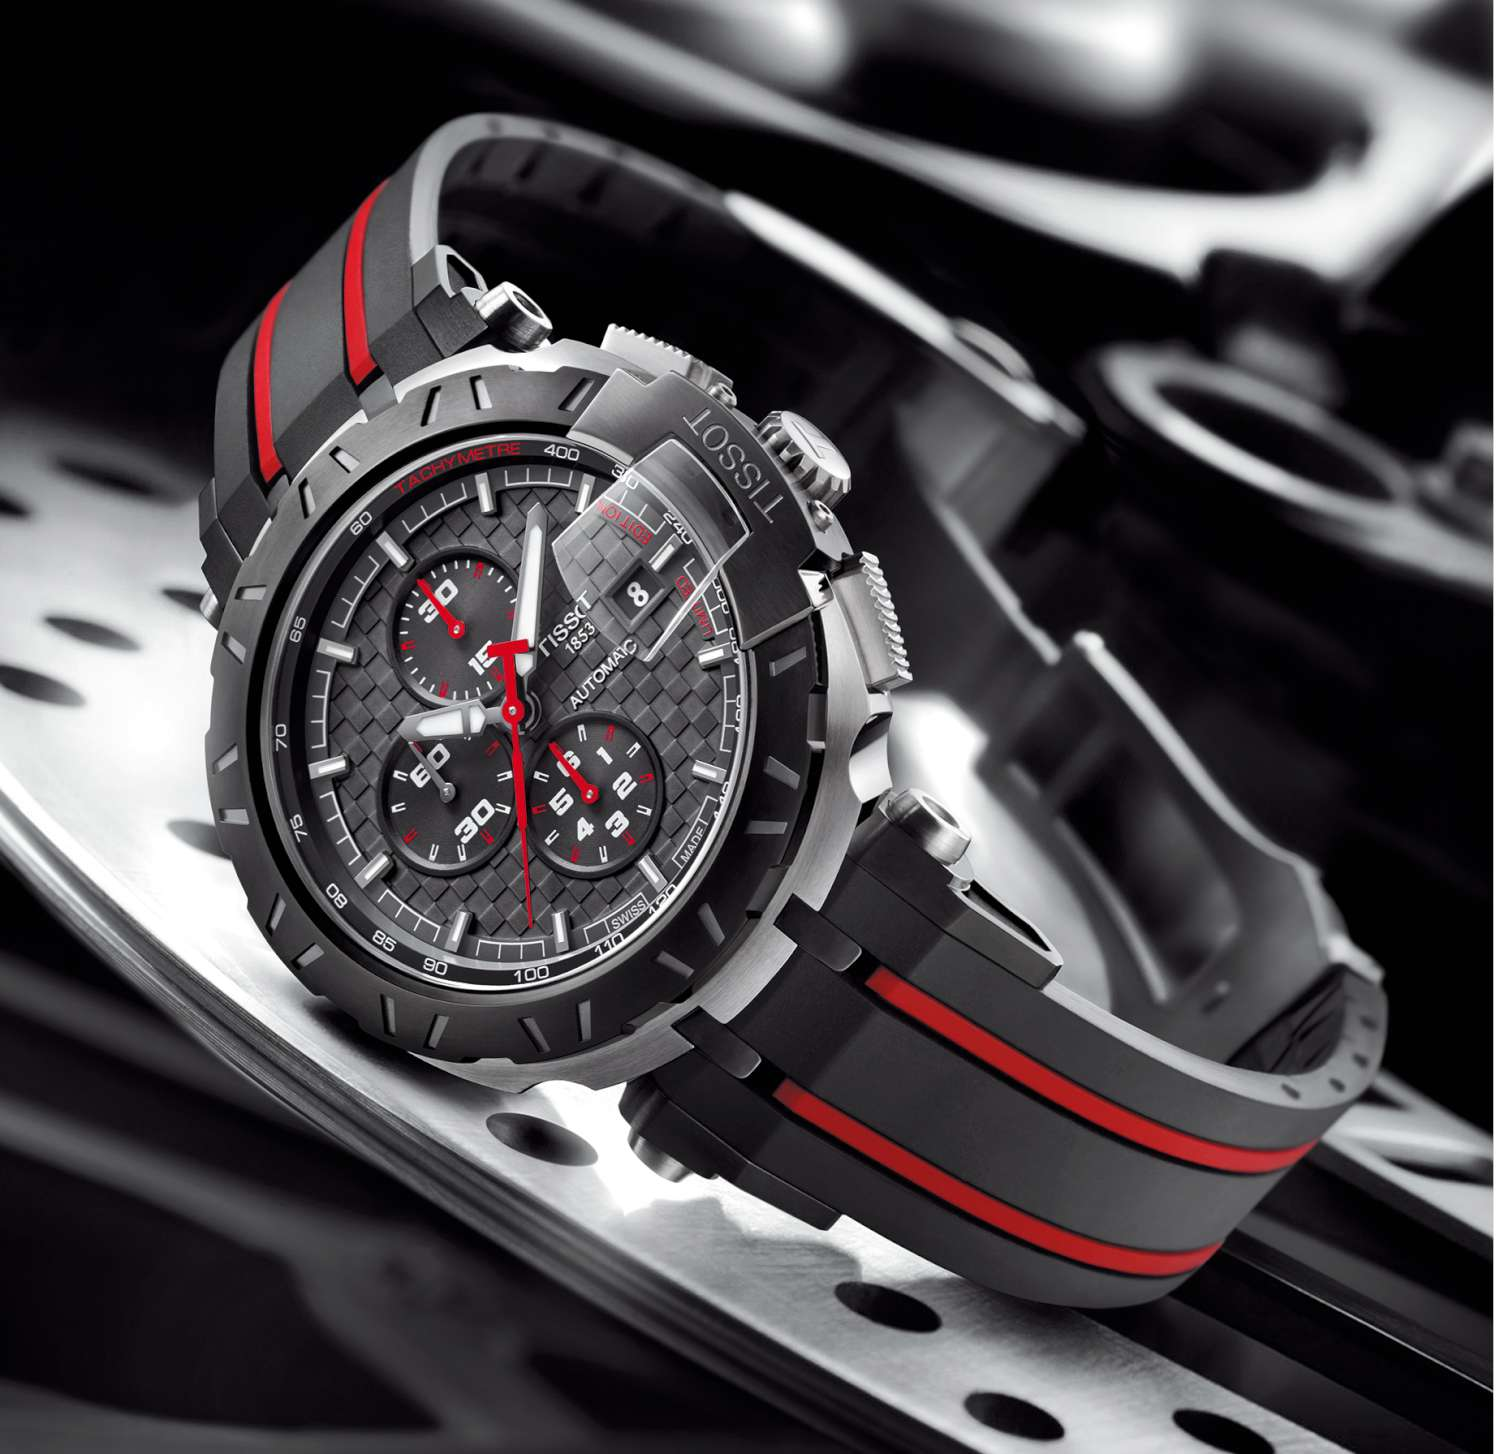 Tissot_T-Race_MotoGP_Automatic_LTD_2015_PR-1500